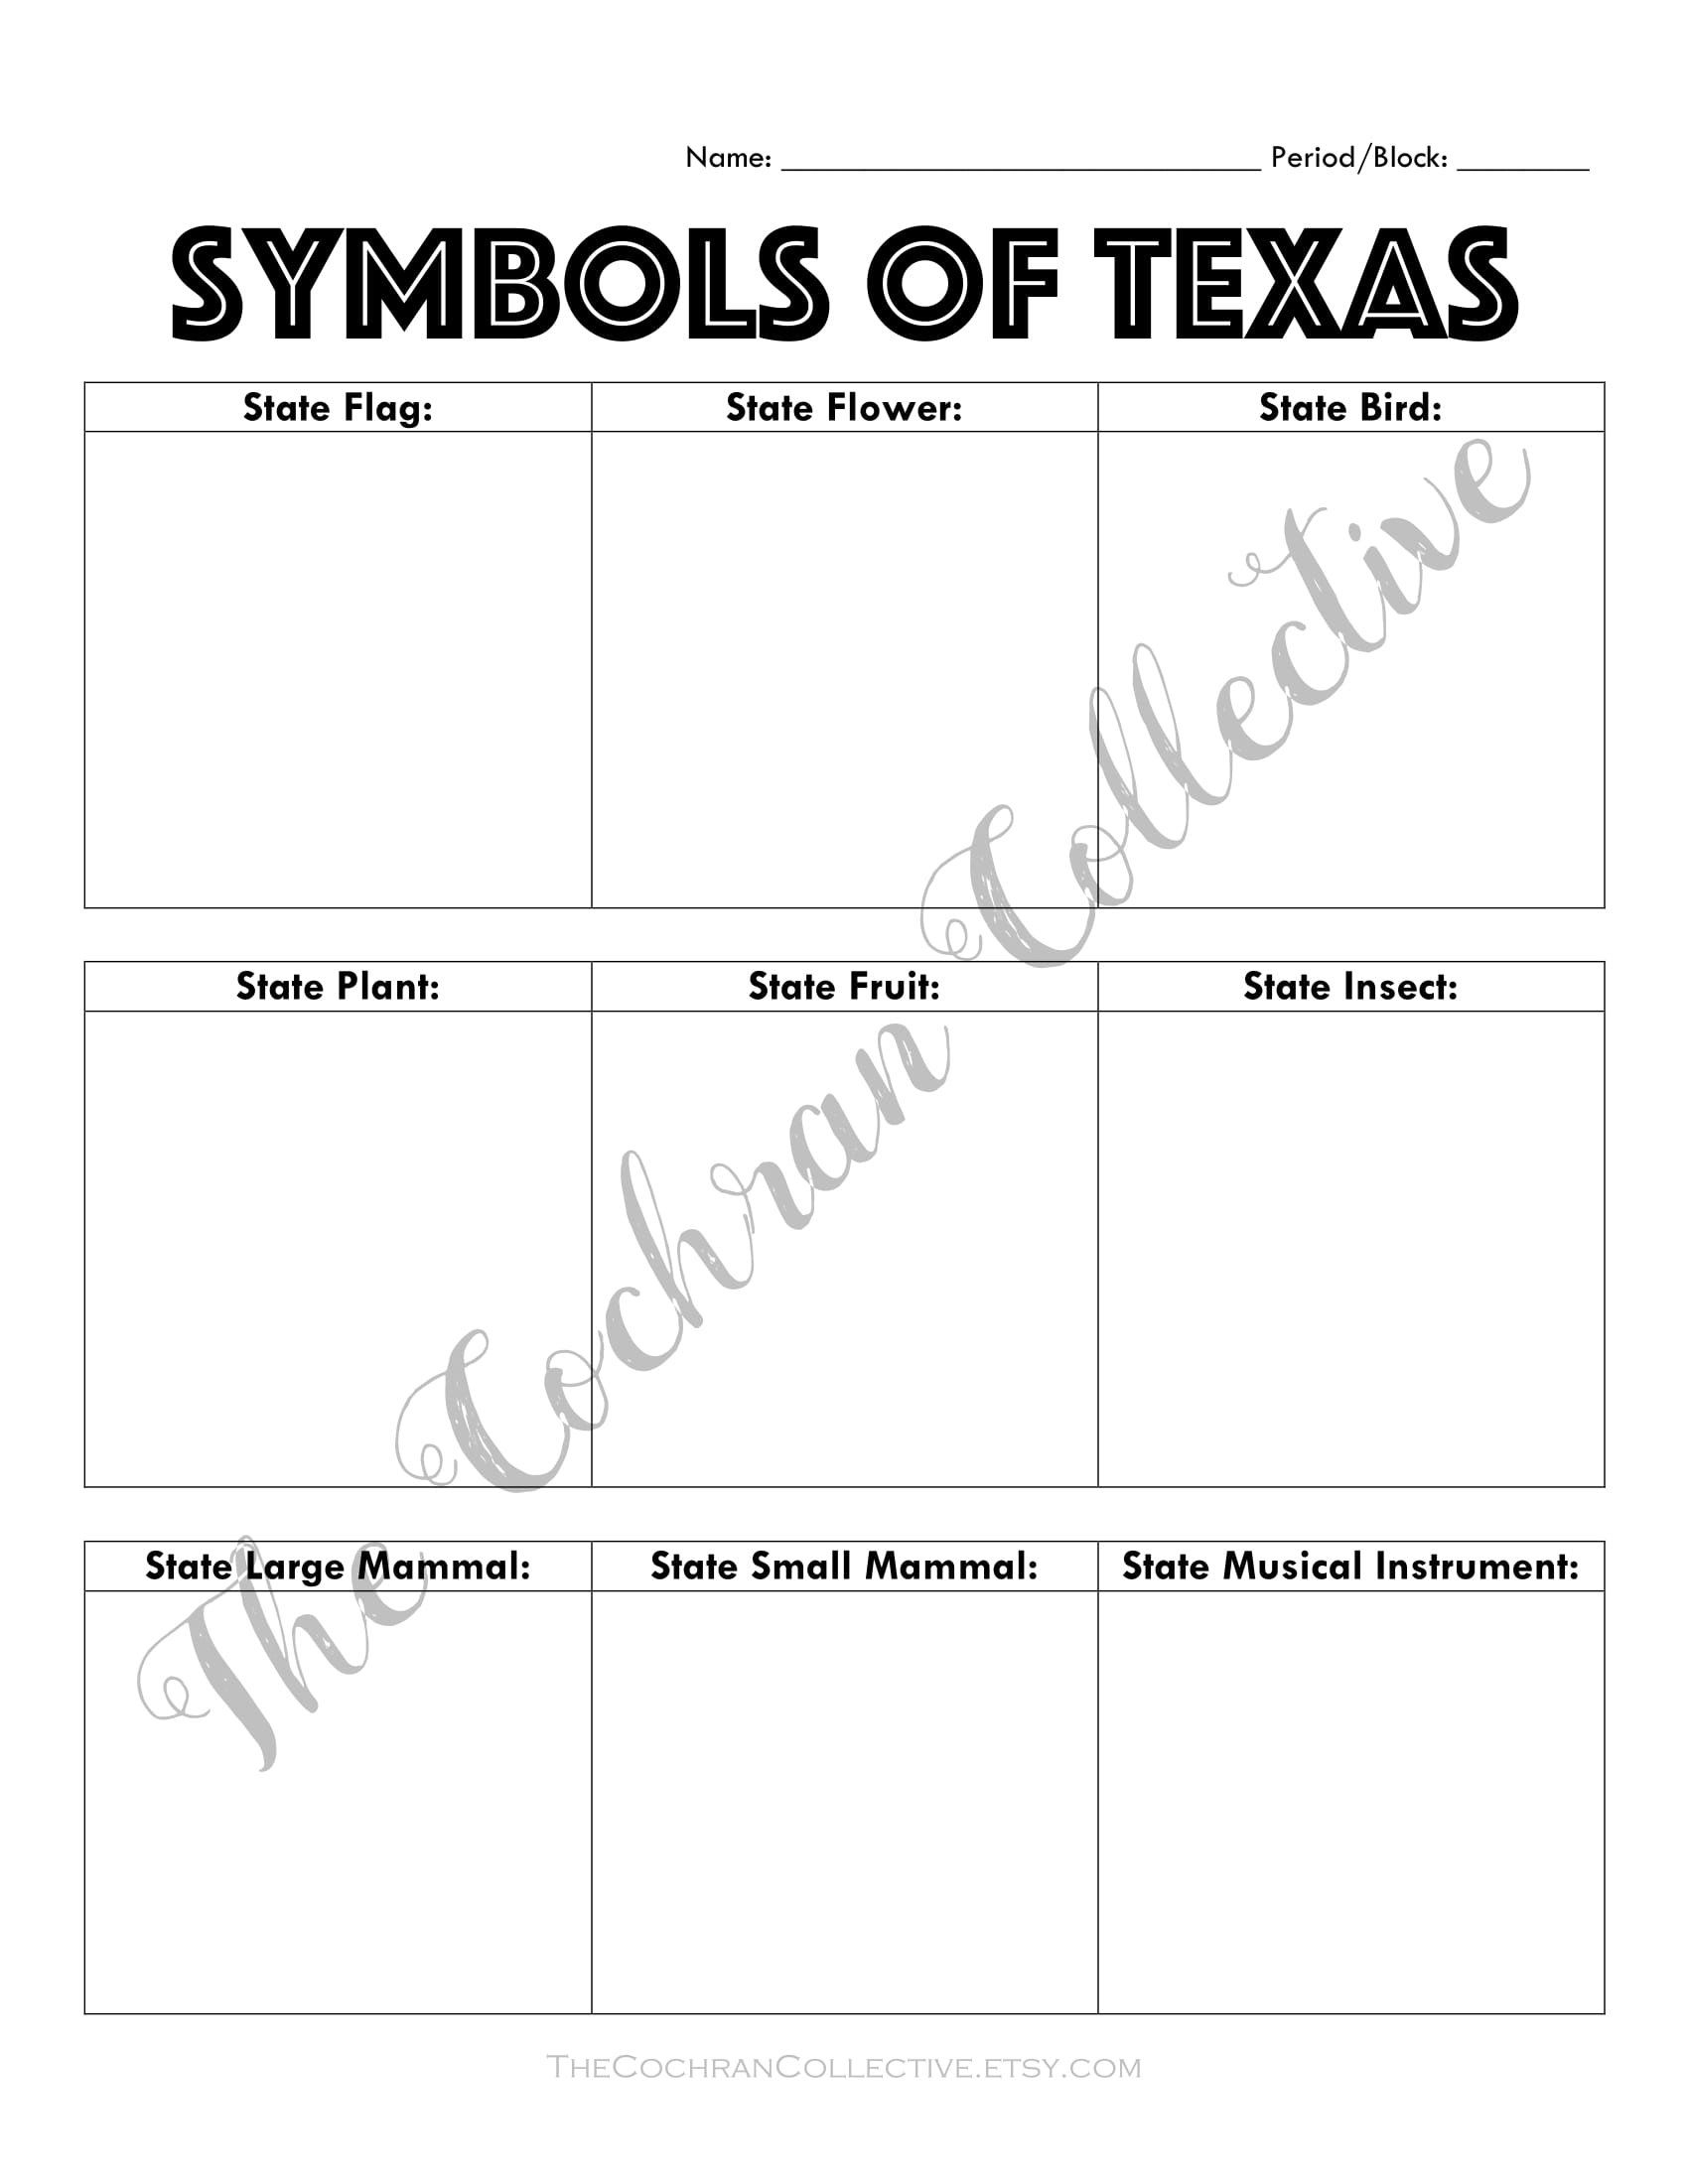 Texas State Symbols Worksheet Printable- Texas History - Texas | Texas History Worksheets Printable